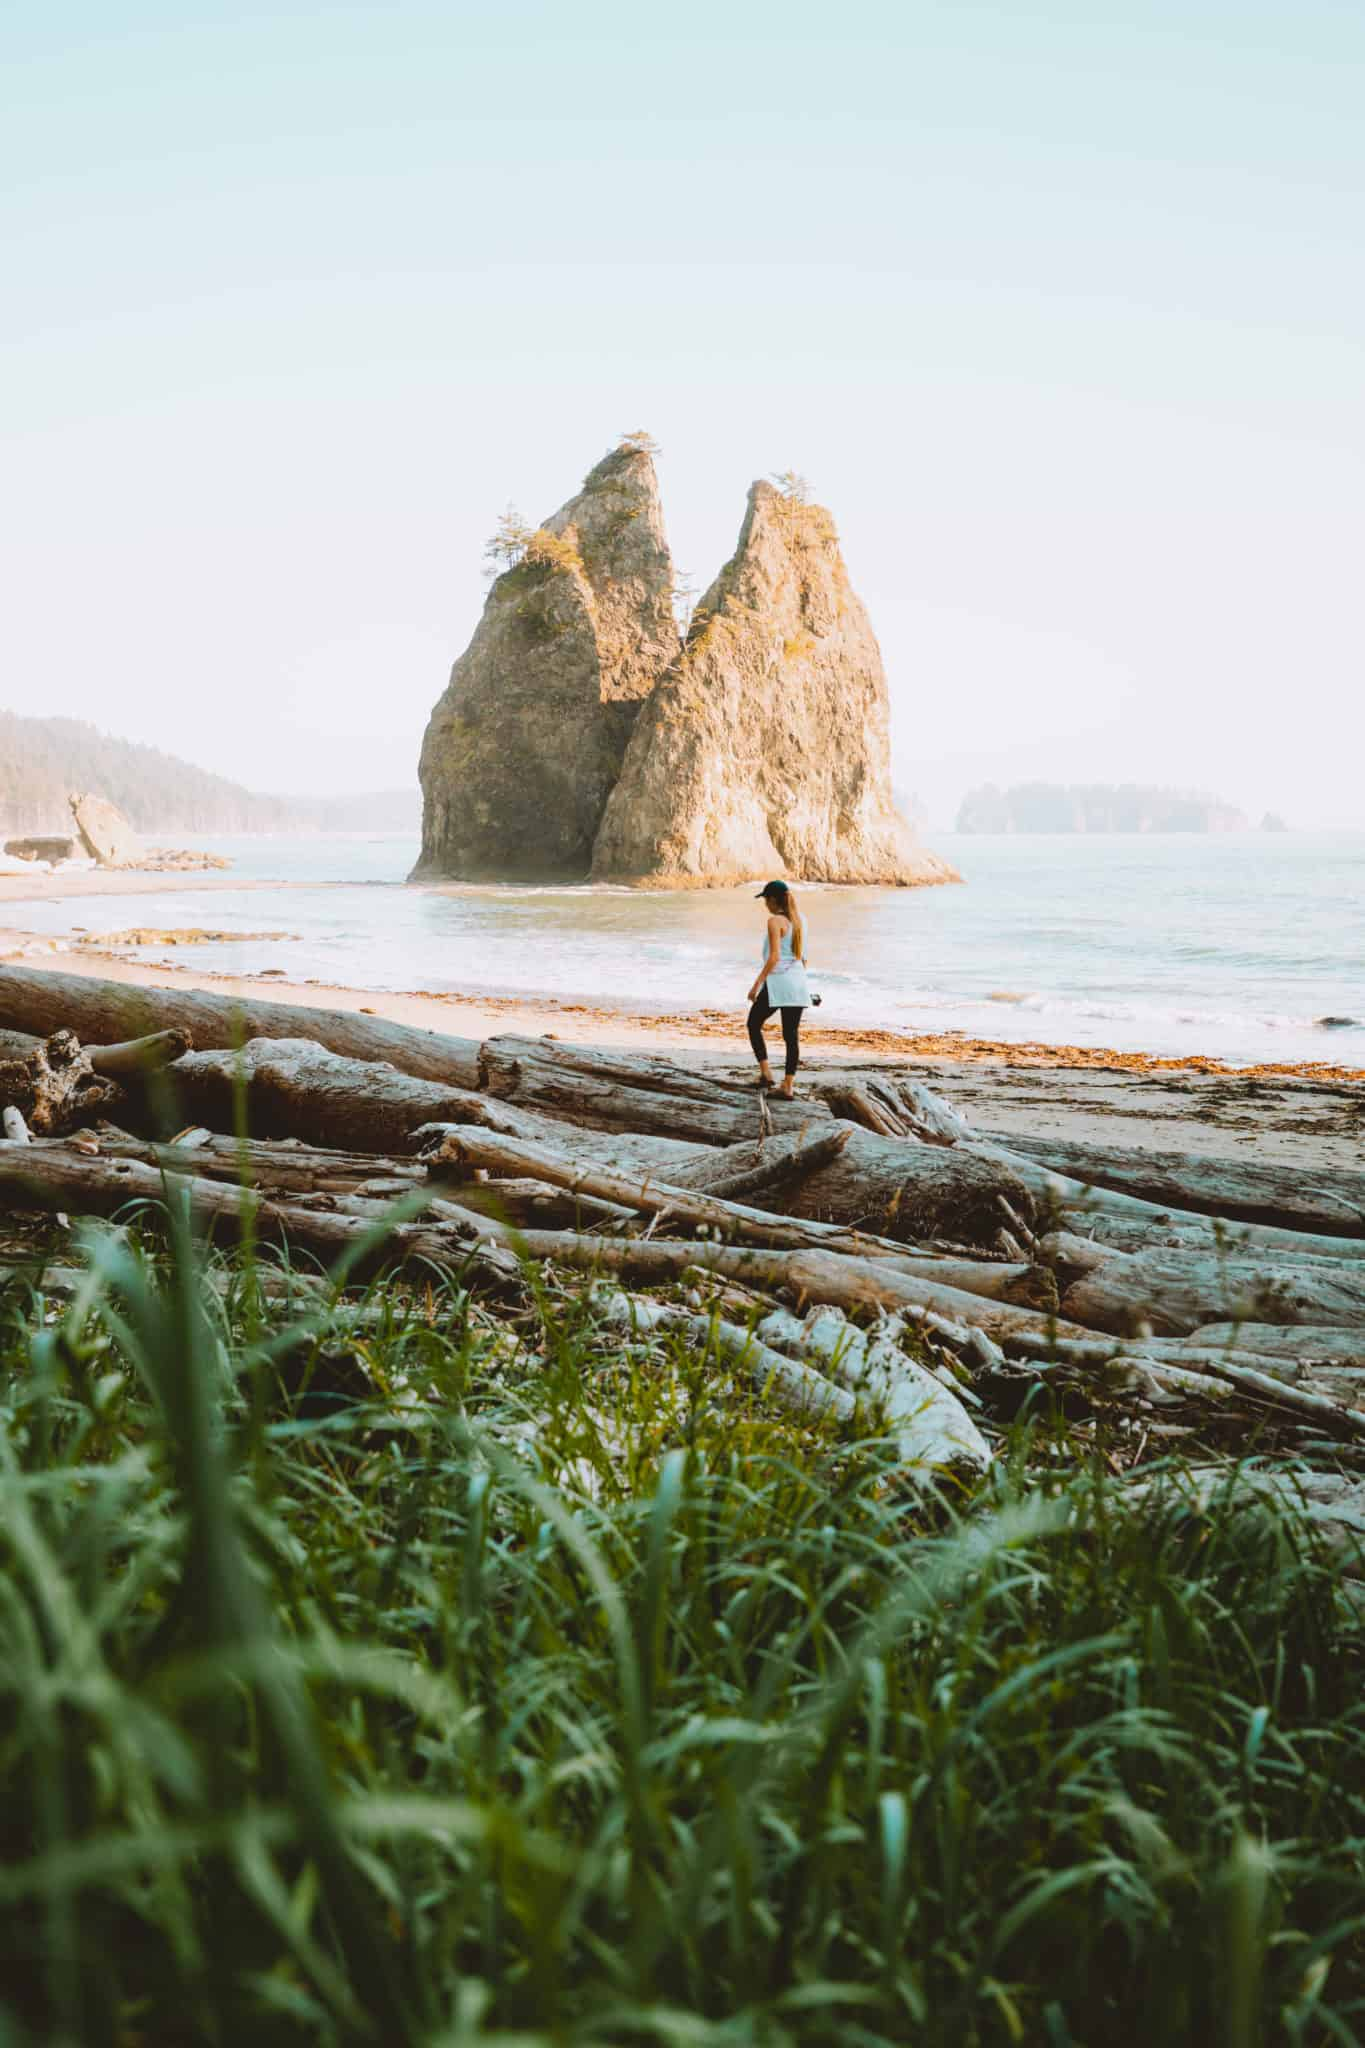 Emily Mandagie standing next to Sea stacks at Rialto Beach, Olympic National Park